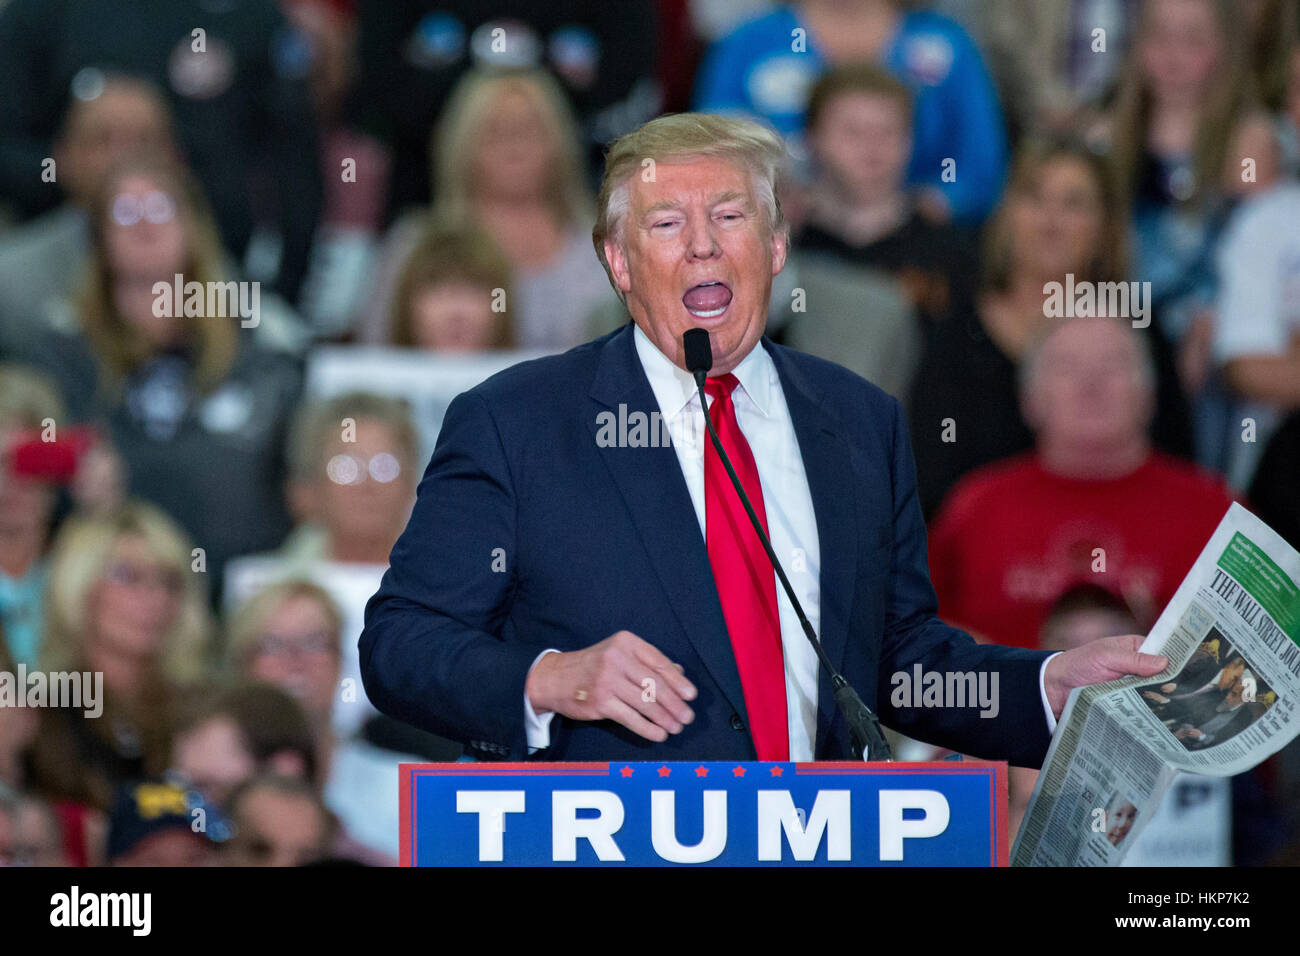 d5fcaaa189e Republican presidential candidate billionaire Donald Trump holds up a copy  of the Wall Street Journal as